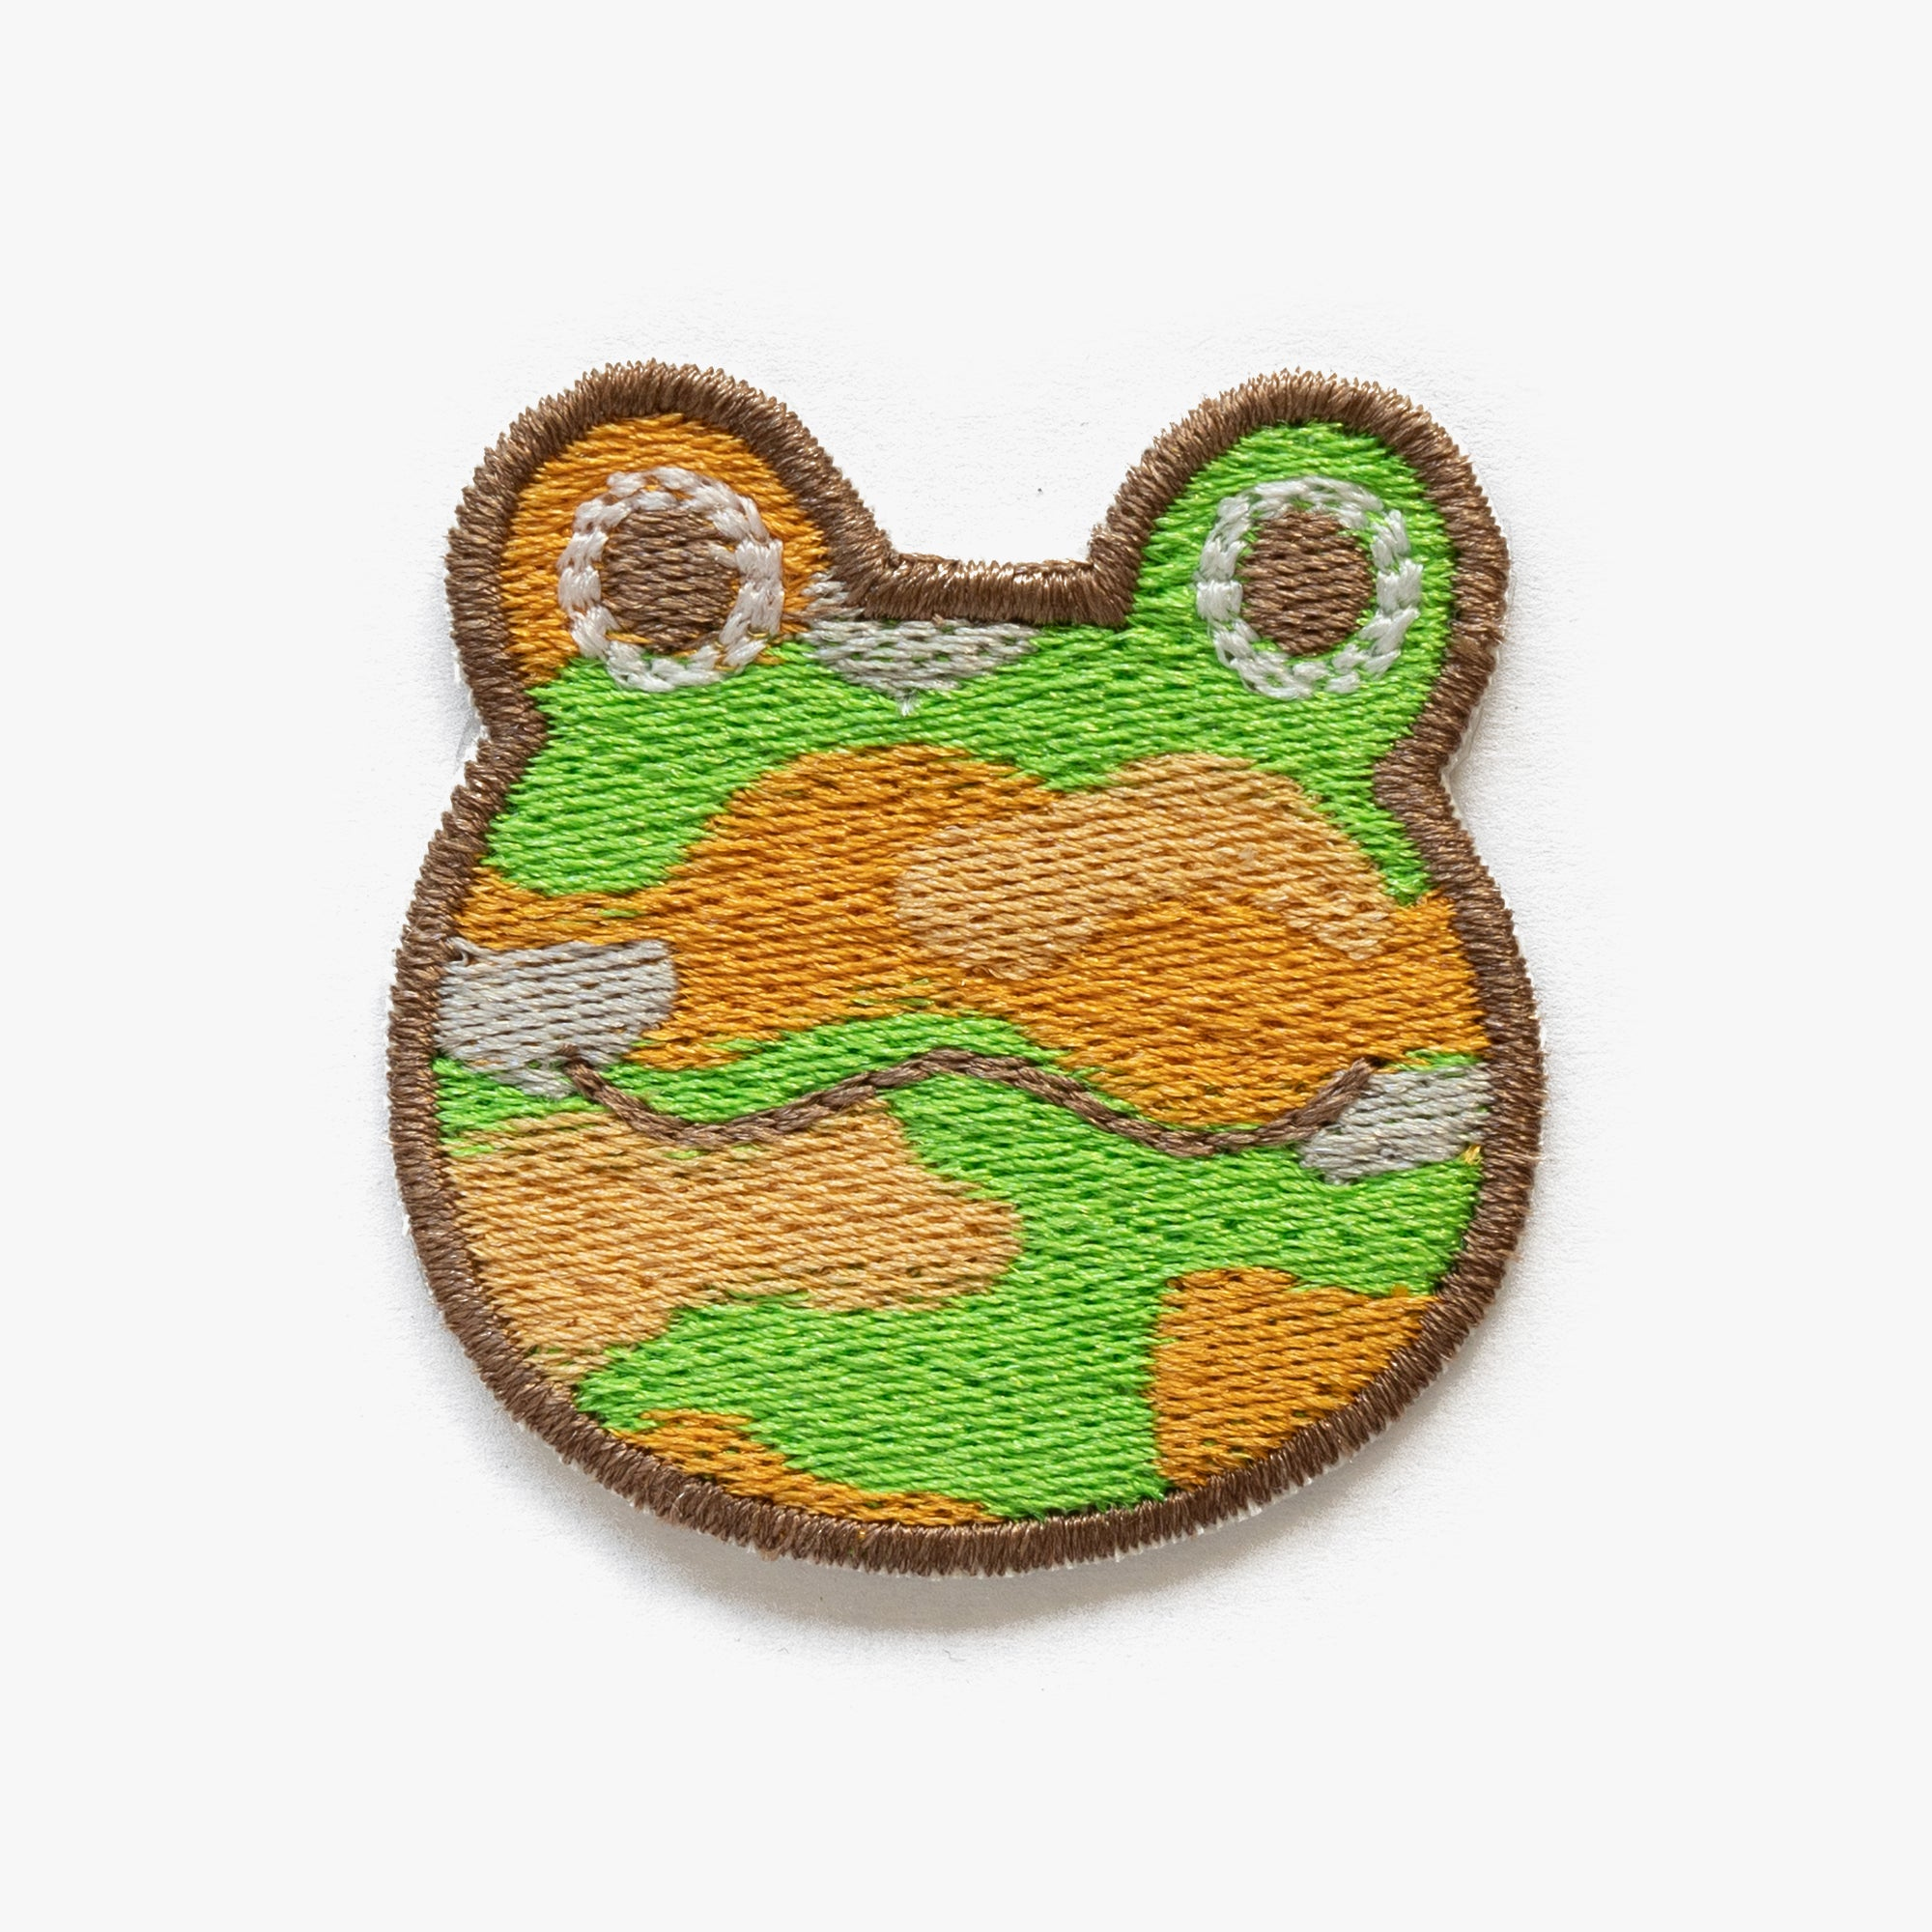 Camofrog Animal Crossing Embroidered Patch (Homemade)